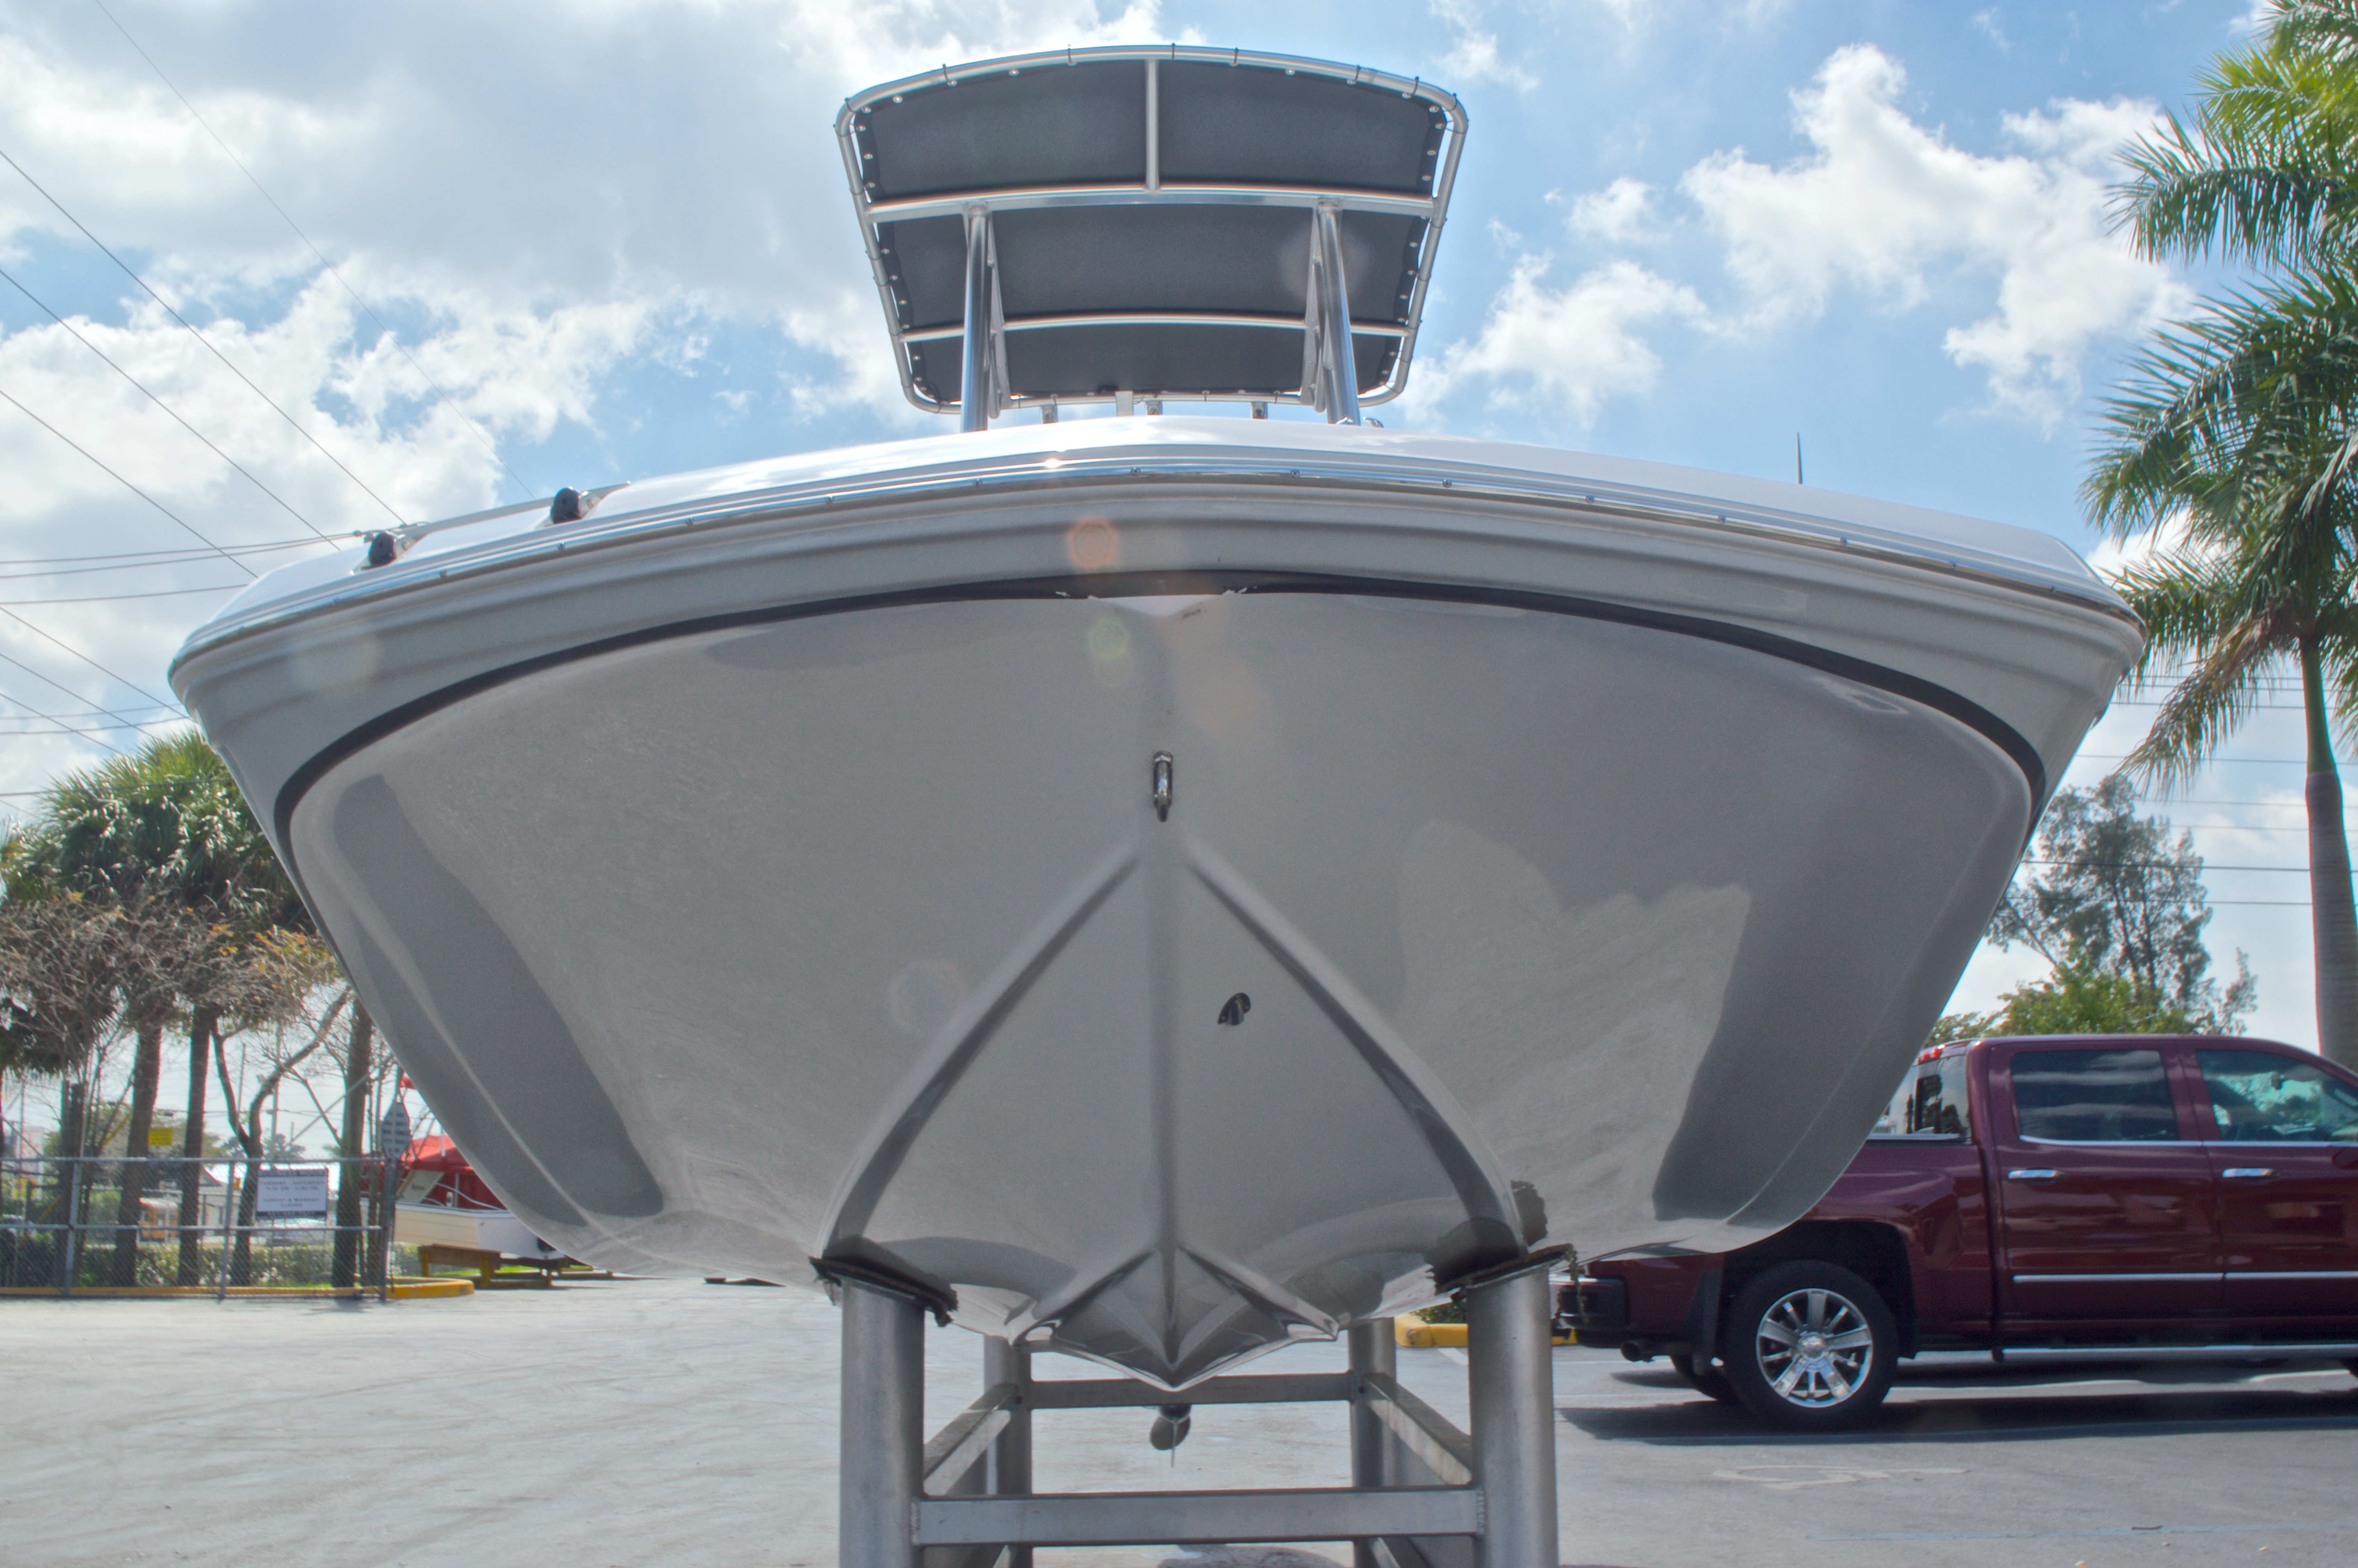 Thumbnail 3 for New 2016 Hurricane CC19 Center Console boat for sale in West Palm Beach, FL